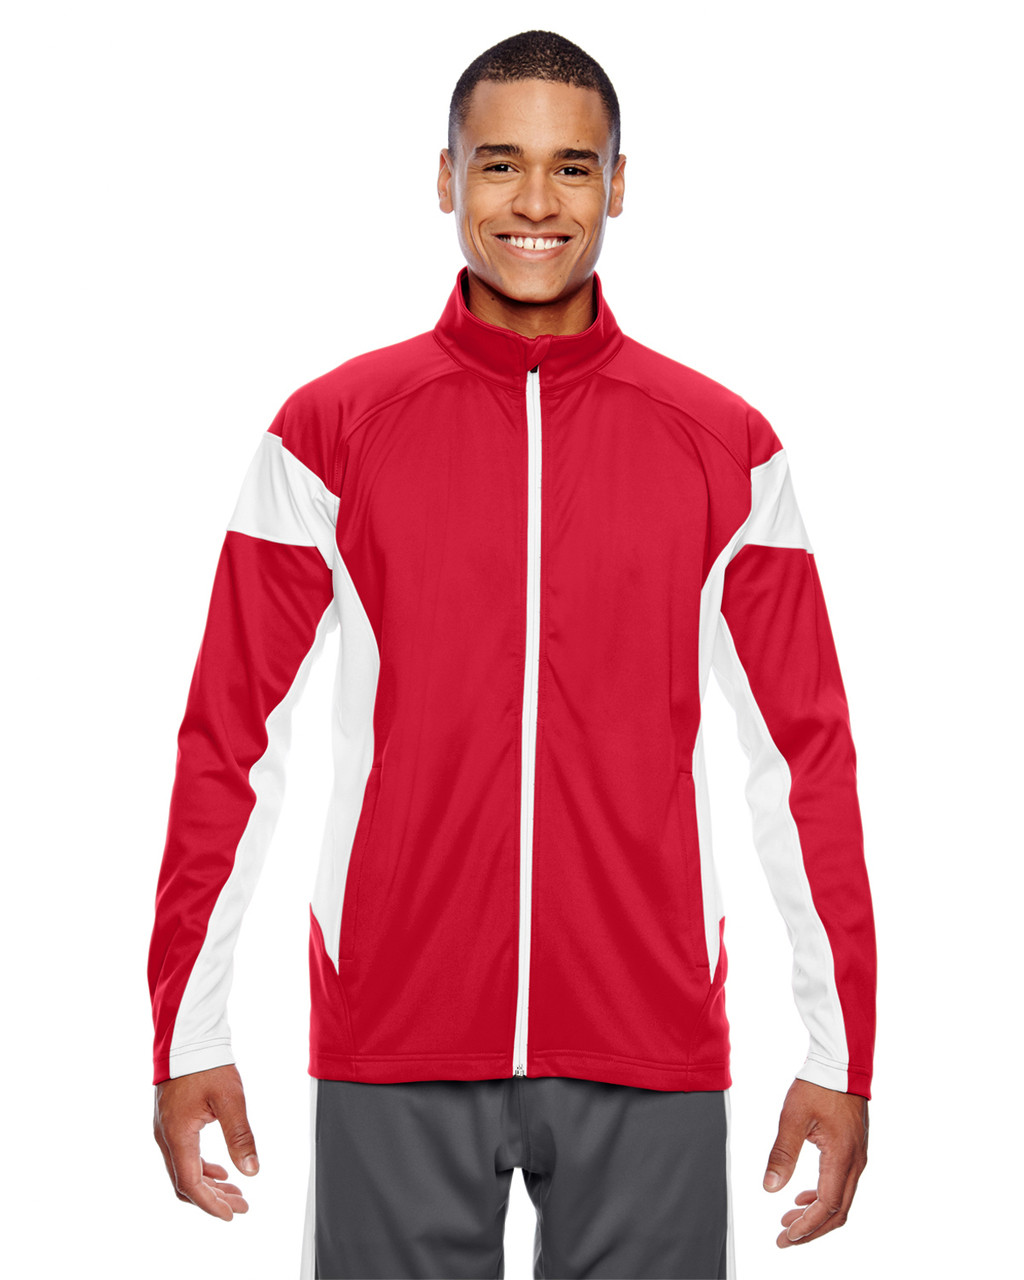 Red/White - TT34 Team 365 Men's Performance Full-Zip Jacket | Blankclothing.ca